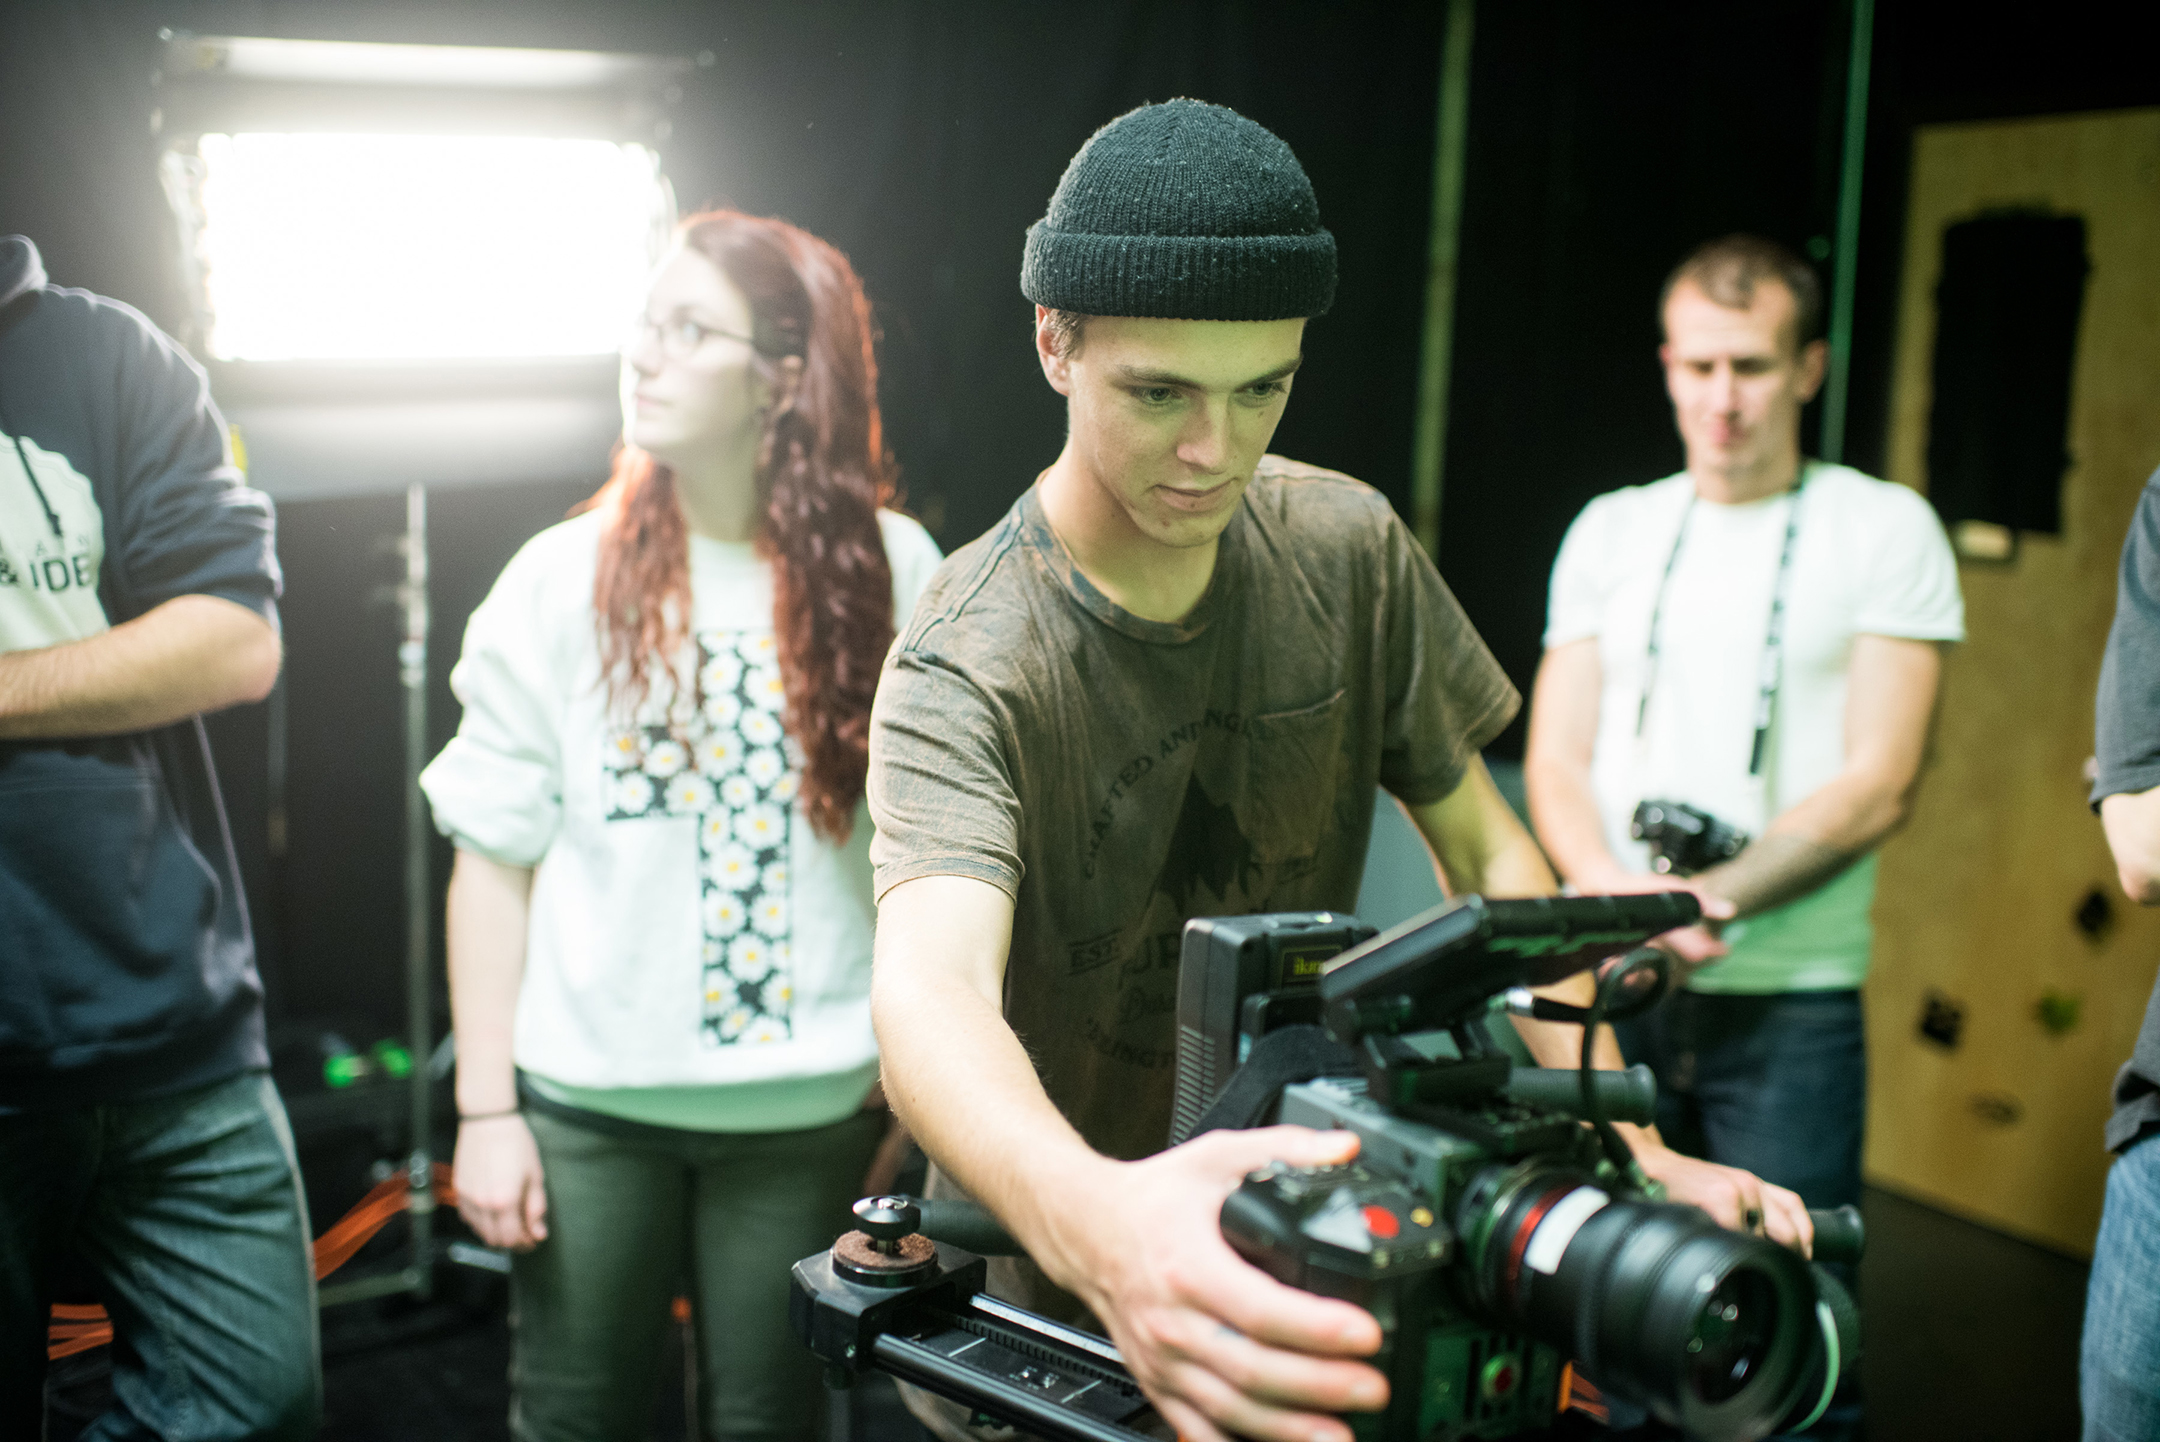 Film and video production at the art & design portfolio summer course for hgih school students